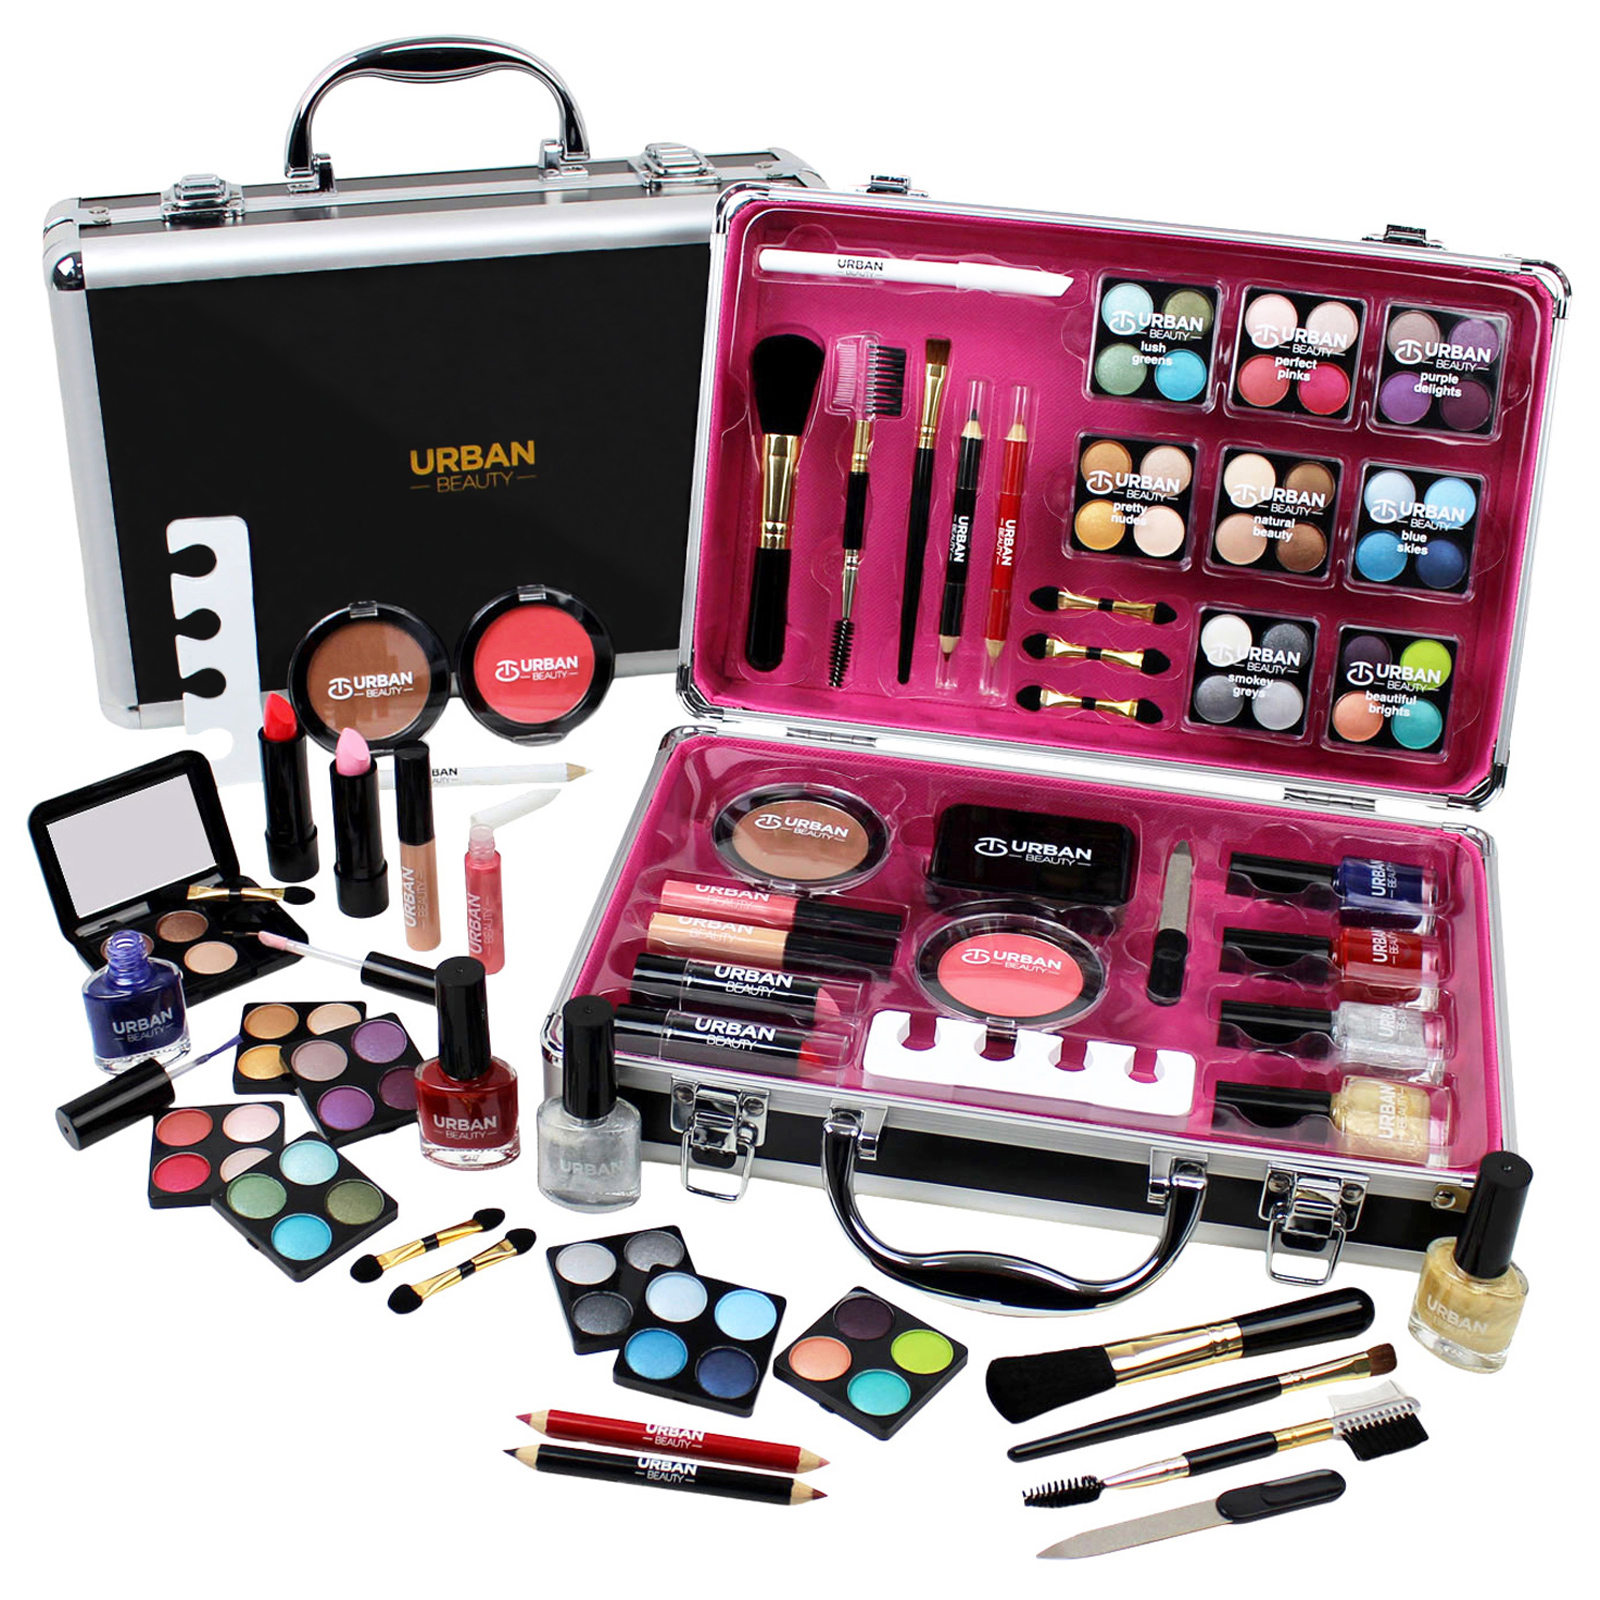 Professional Vanity Case Cosmetic Make Up Urban Beauty Box Gift Set 57 Piece a190a8f615ca